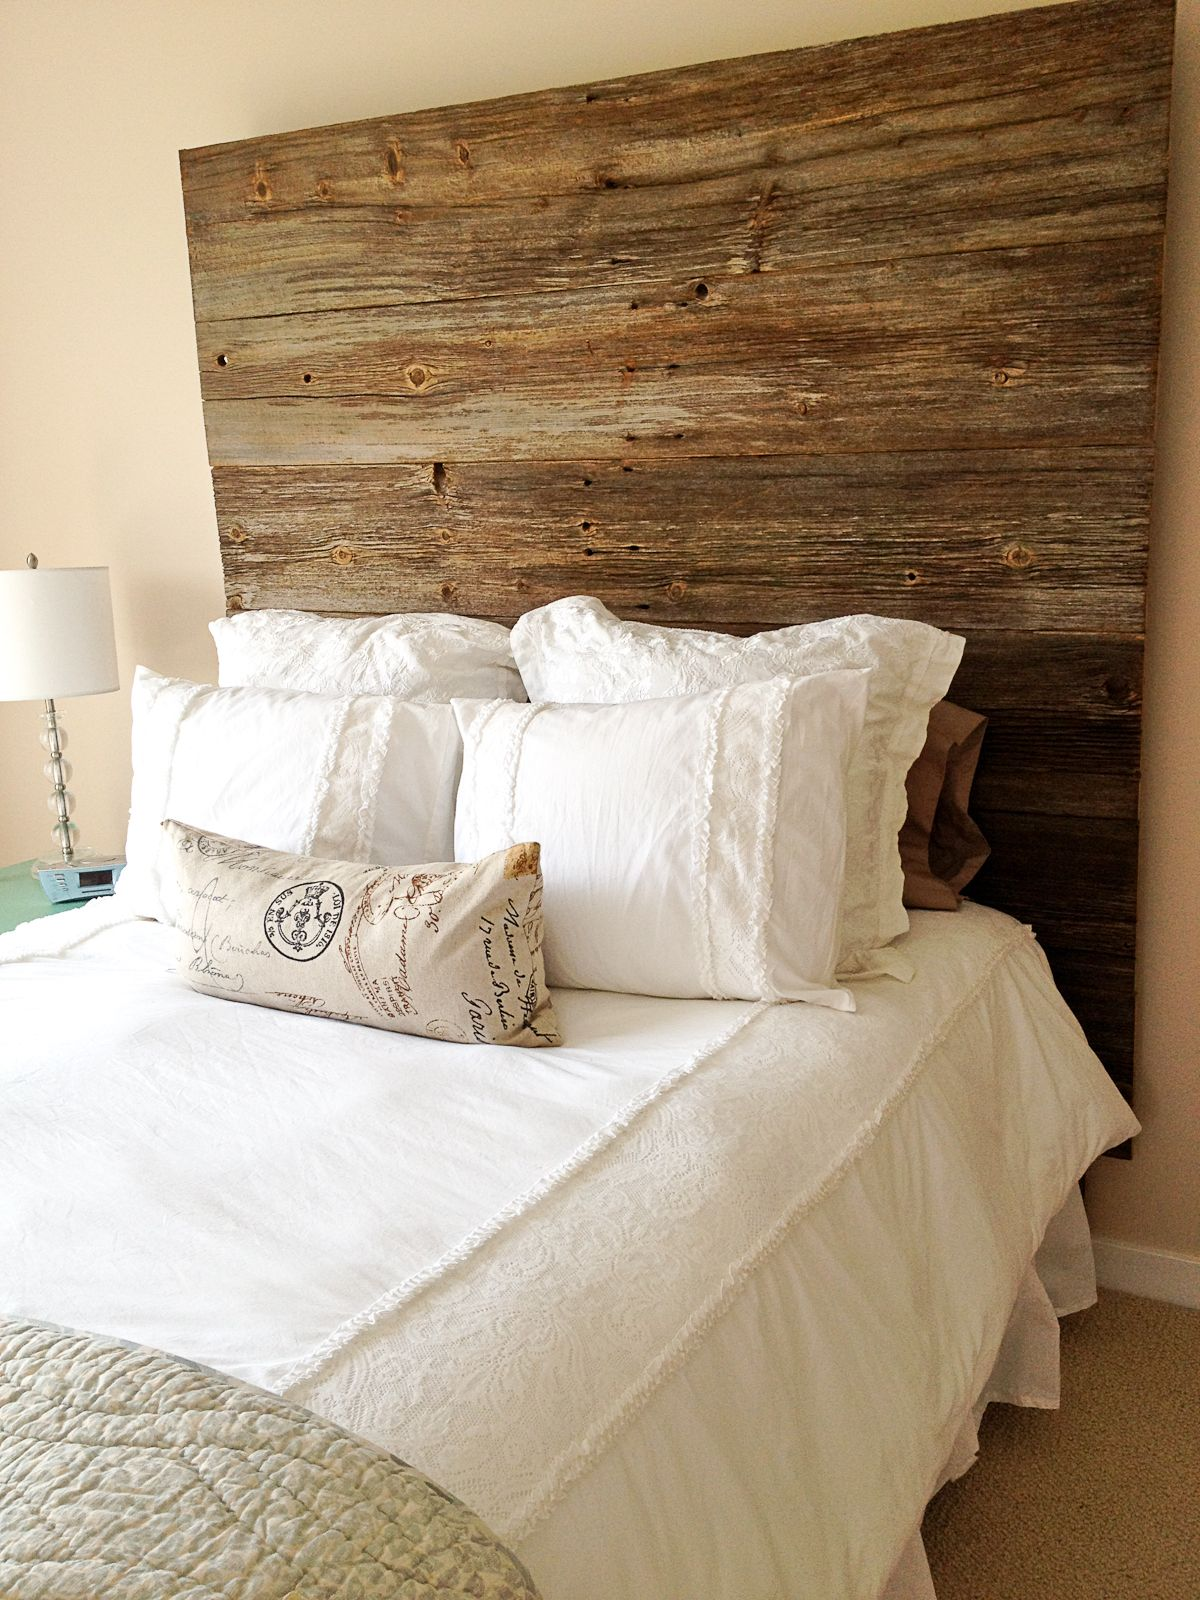 Diy I Sort Of Live In A Barn Home Decorators Rugs Bedroom Headboard Headboards For Beds Reclaimed wood headboards for sale